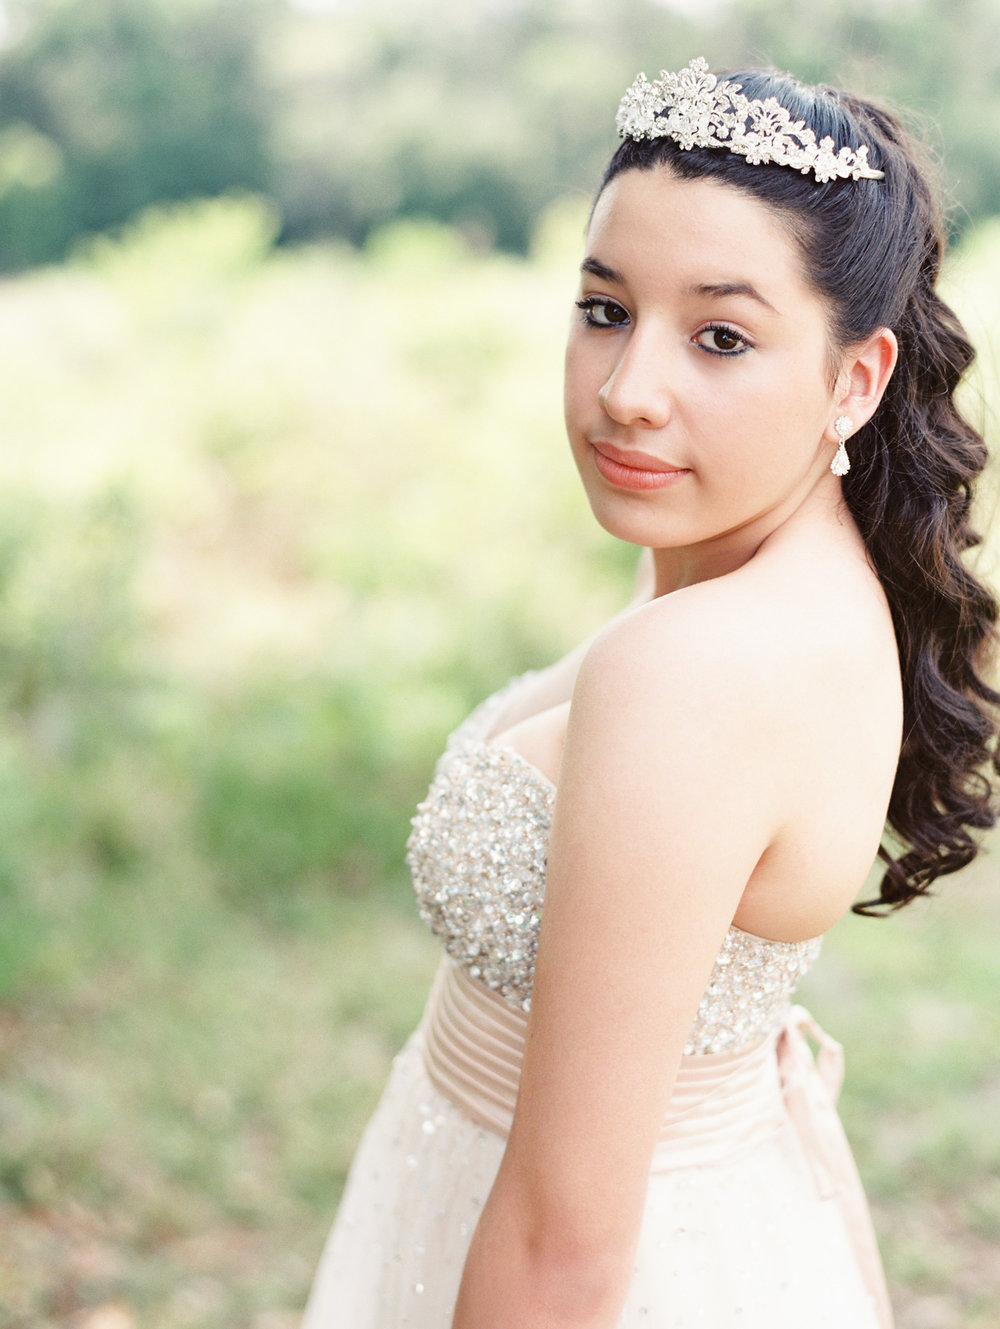 AnnMarie_©kristinmyoung_FILM_Square-7.jpg